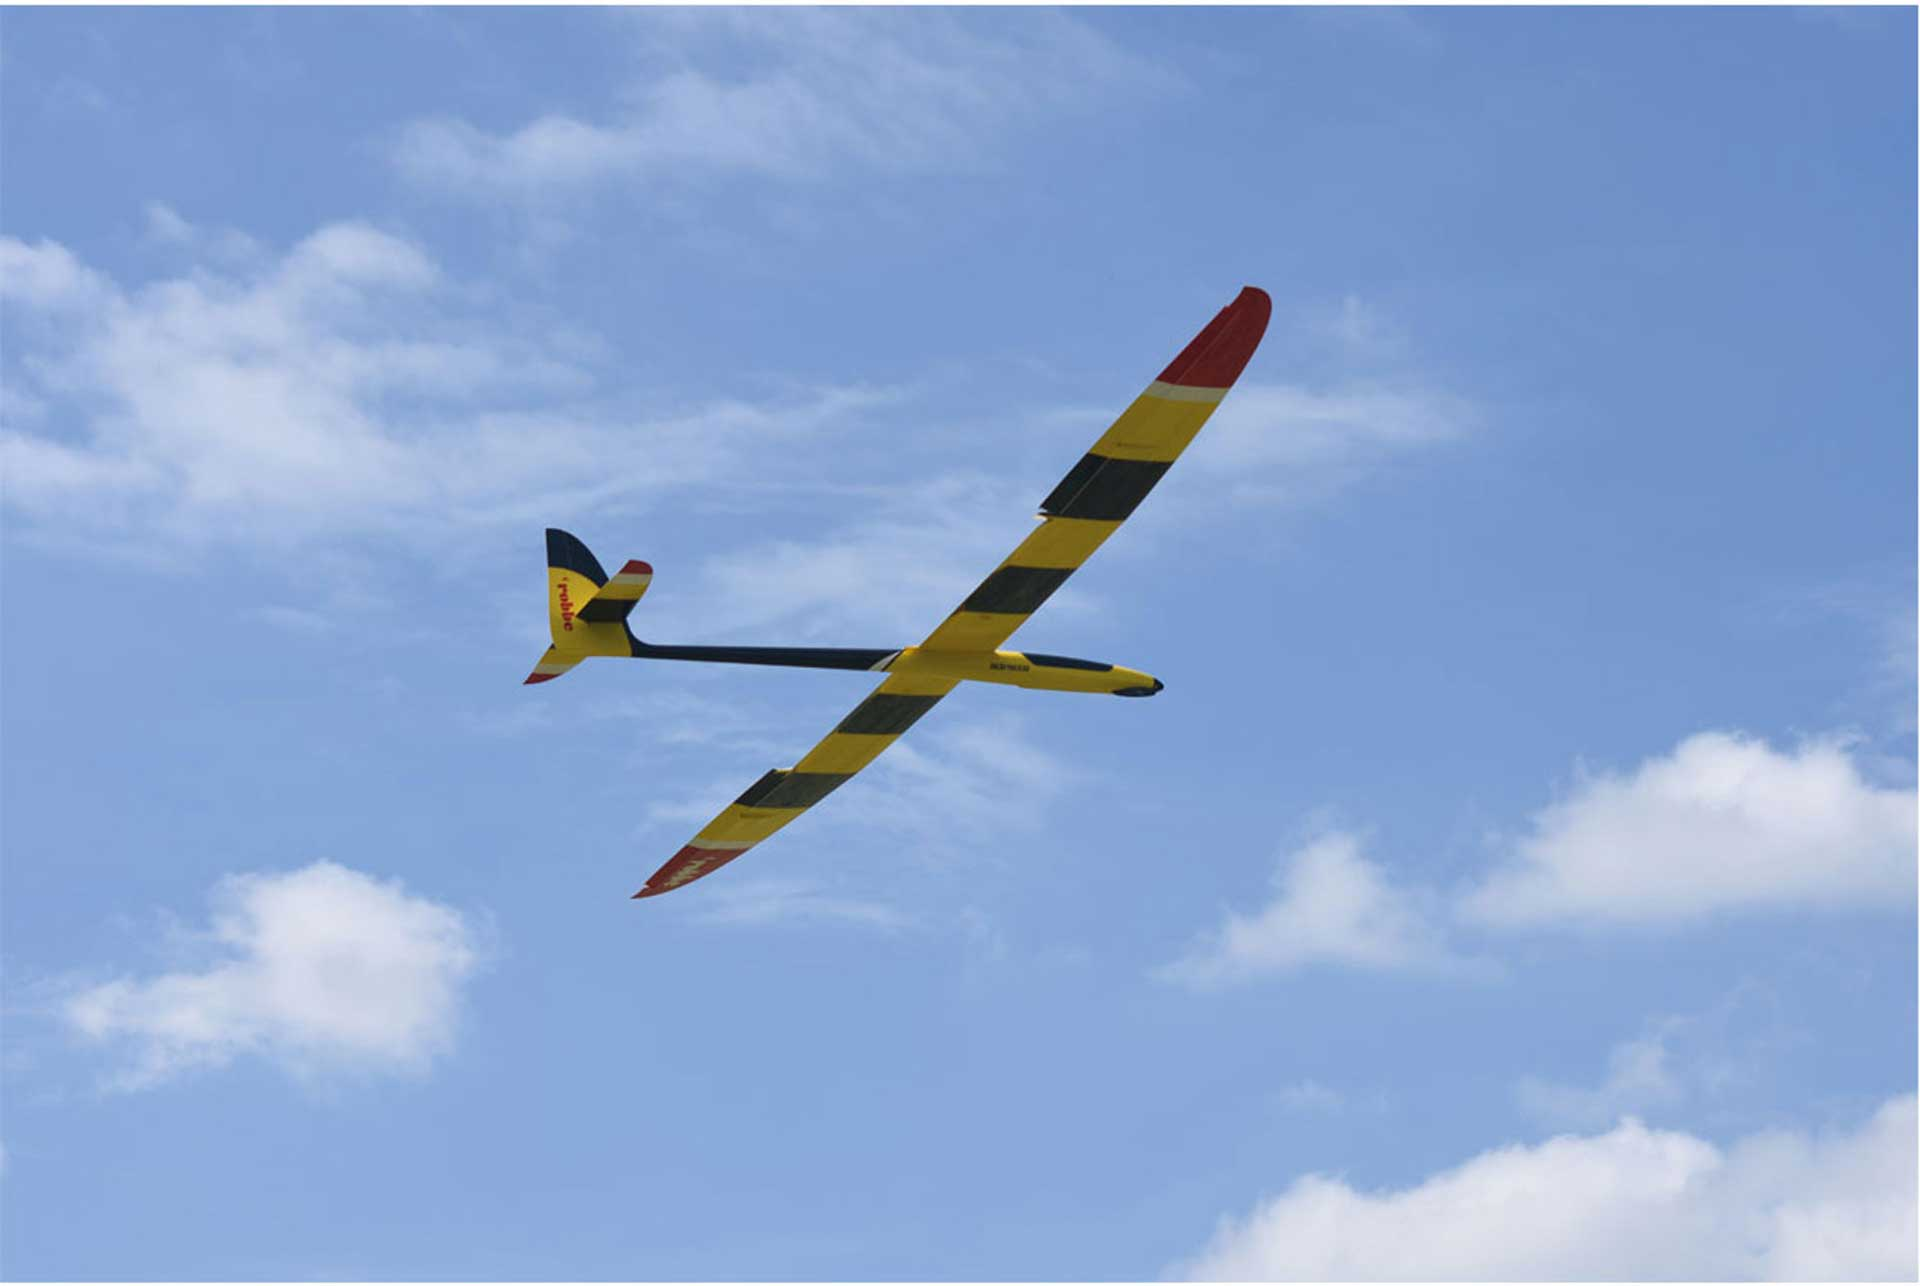 Robbe Modellsport SCIROCCO 4,0 M PNP FULL-GRP HIGH PERFORM ANCE SAILPLANE